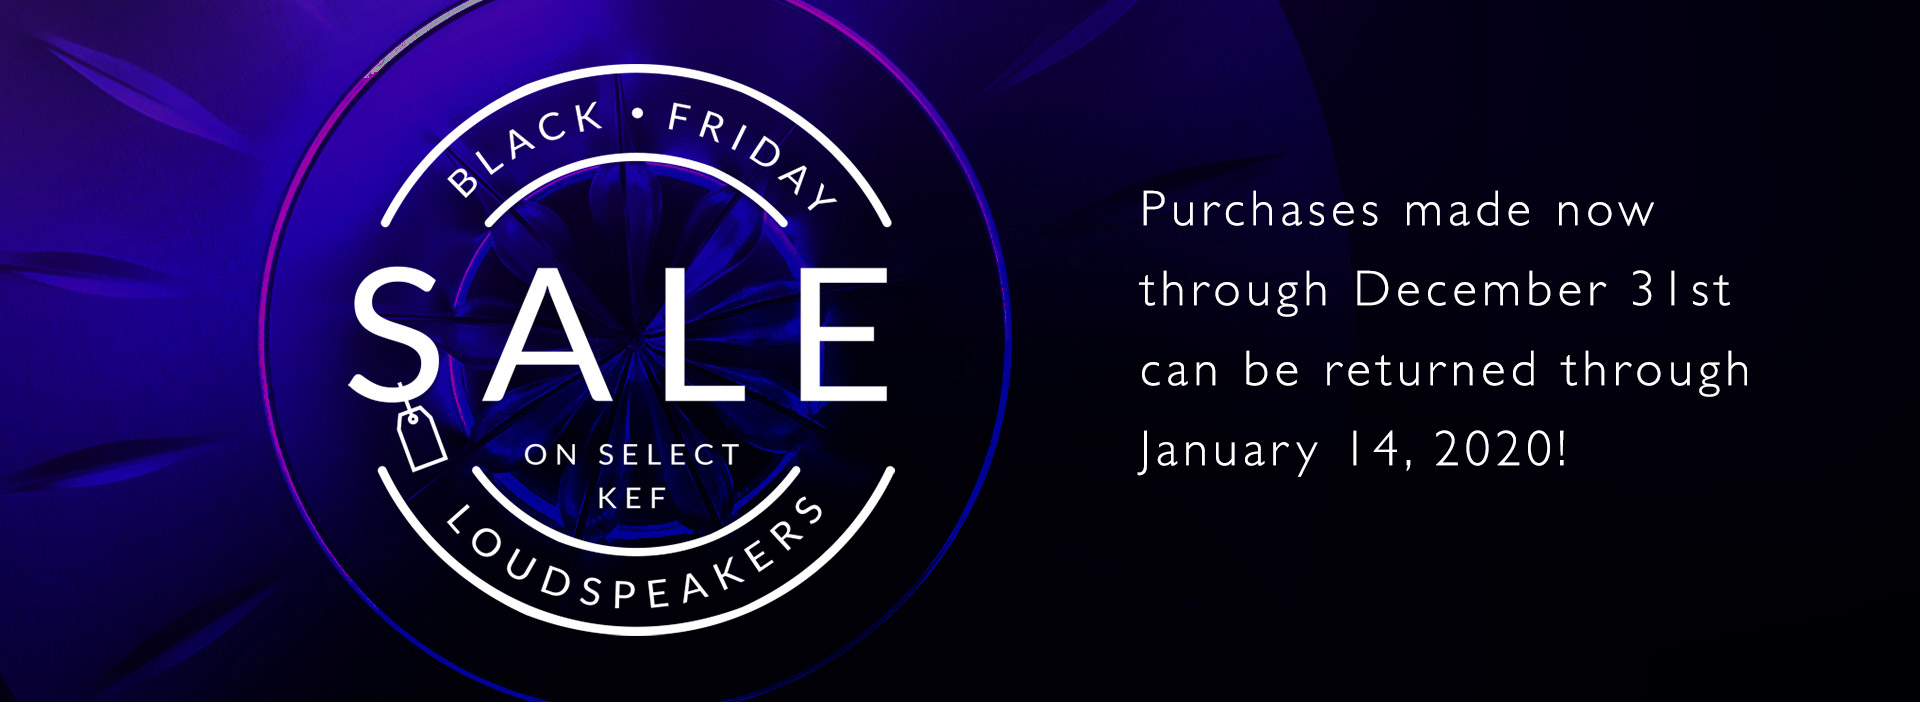 KEF Black Friday 2019 SALE is now ON!